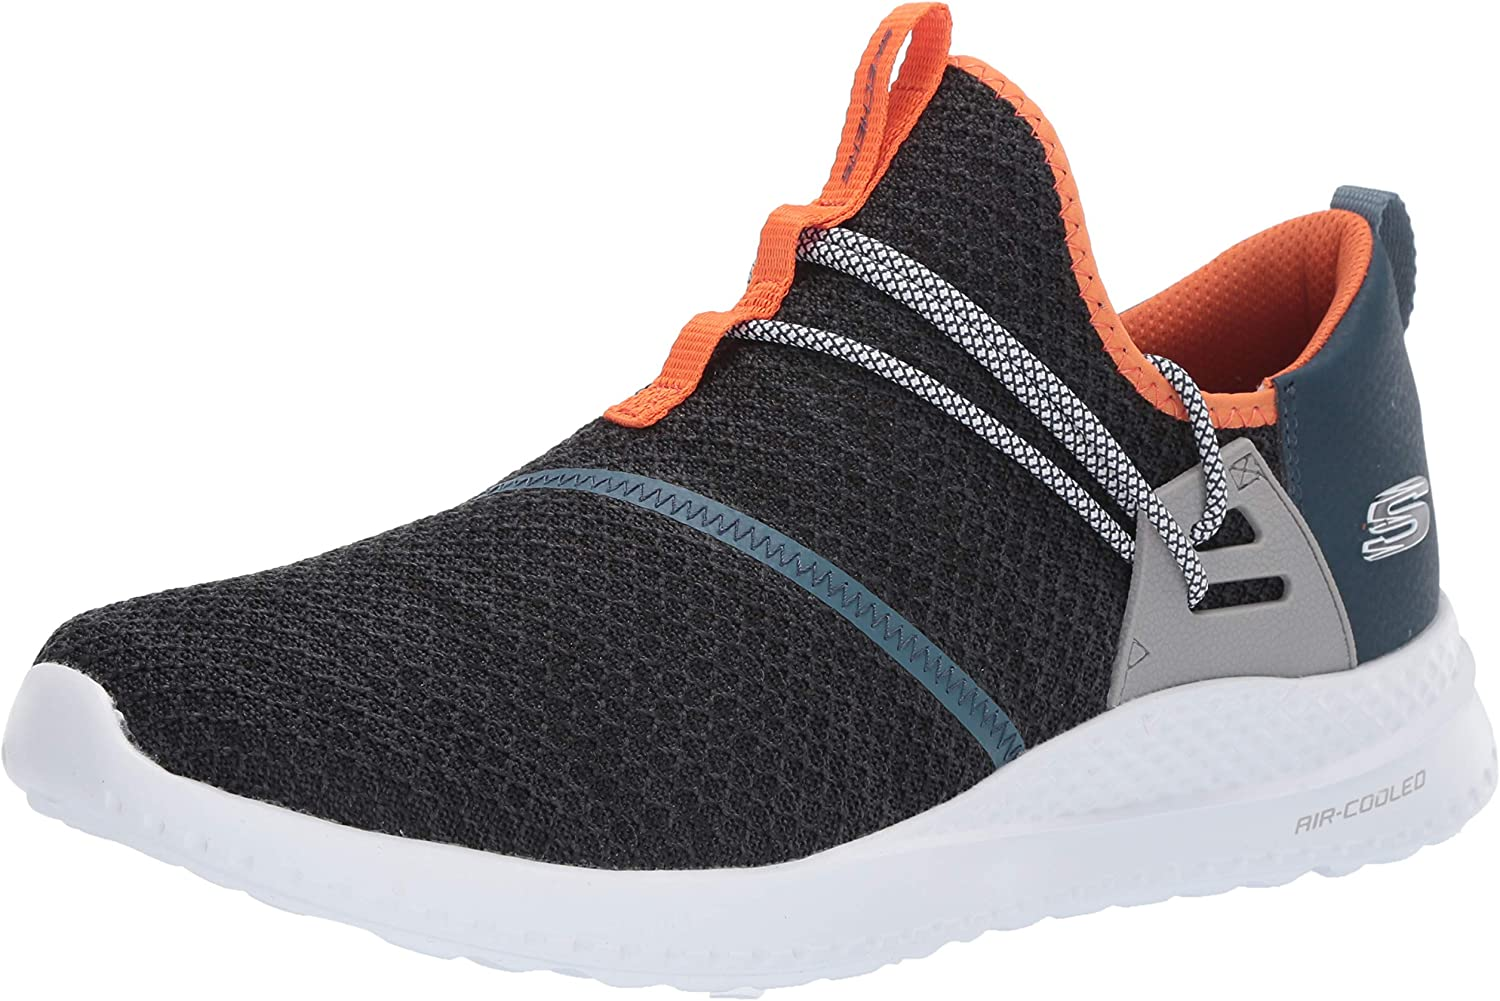 Skechers Men's Matera Direct Max 70% OFF stock discount Holtcrest Oxford